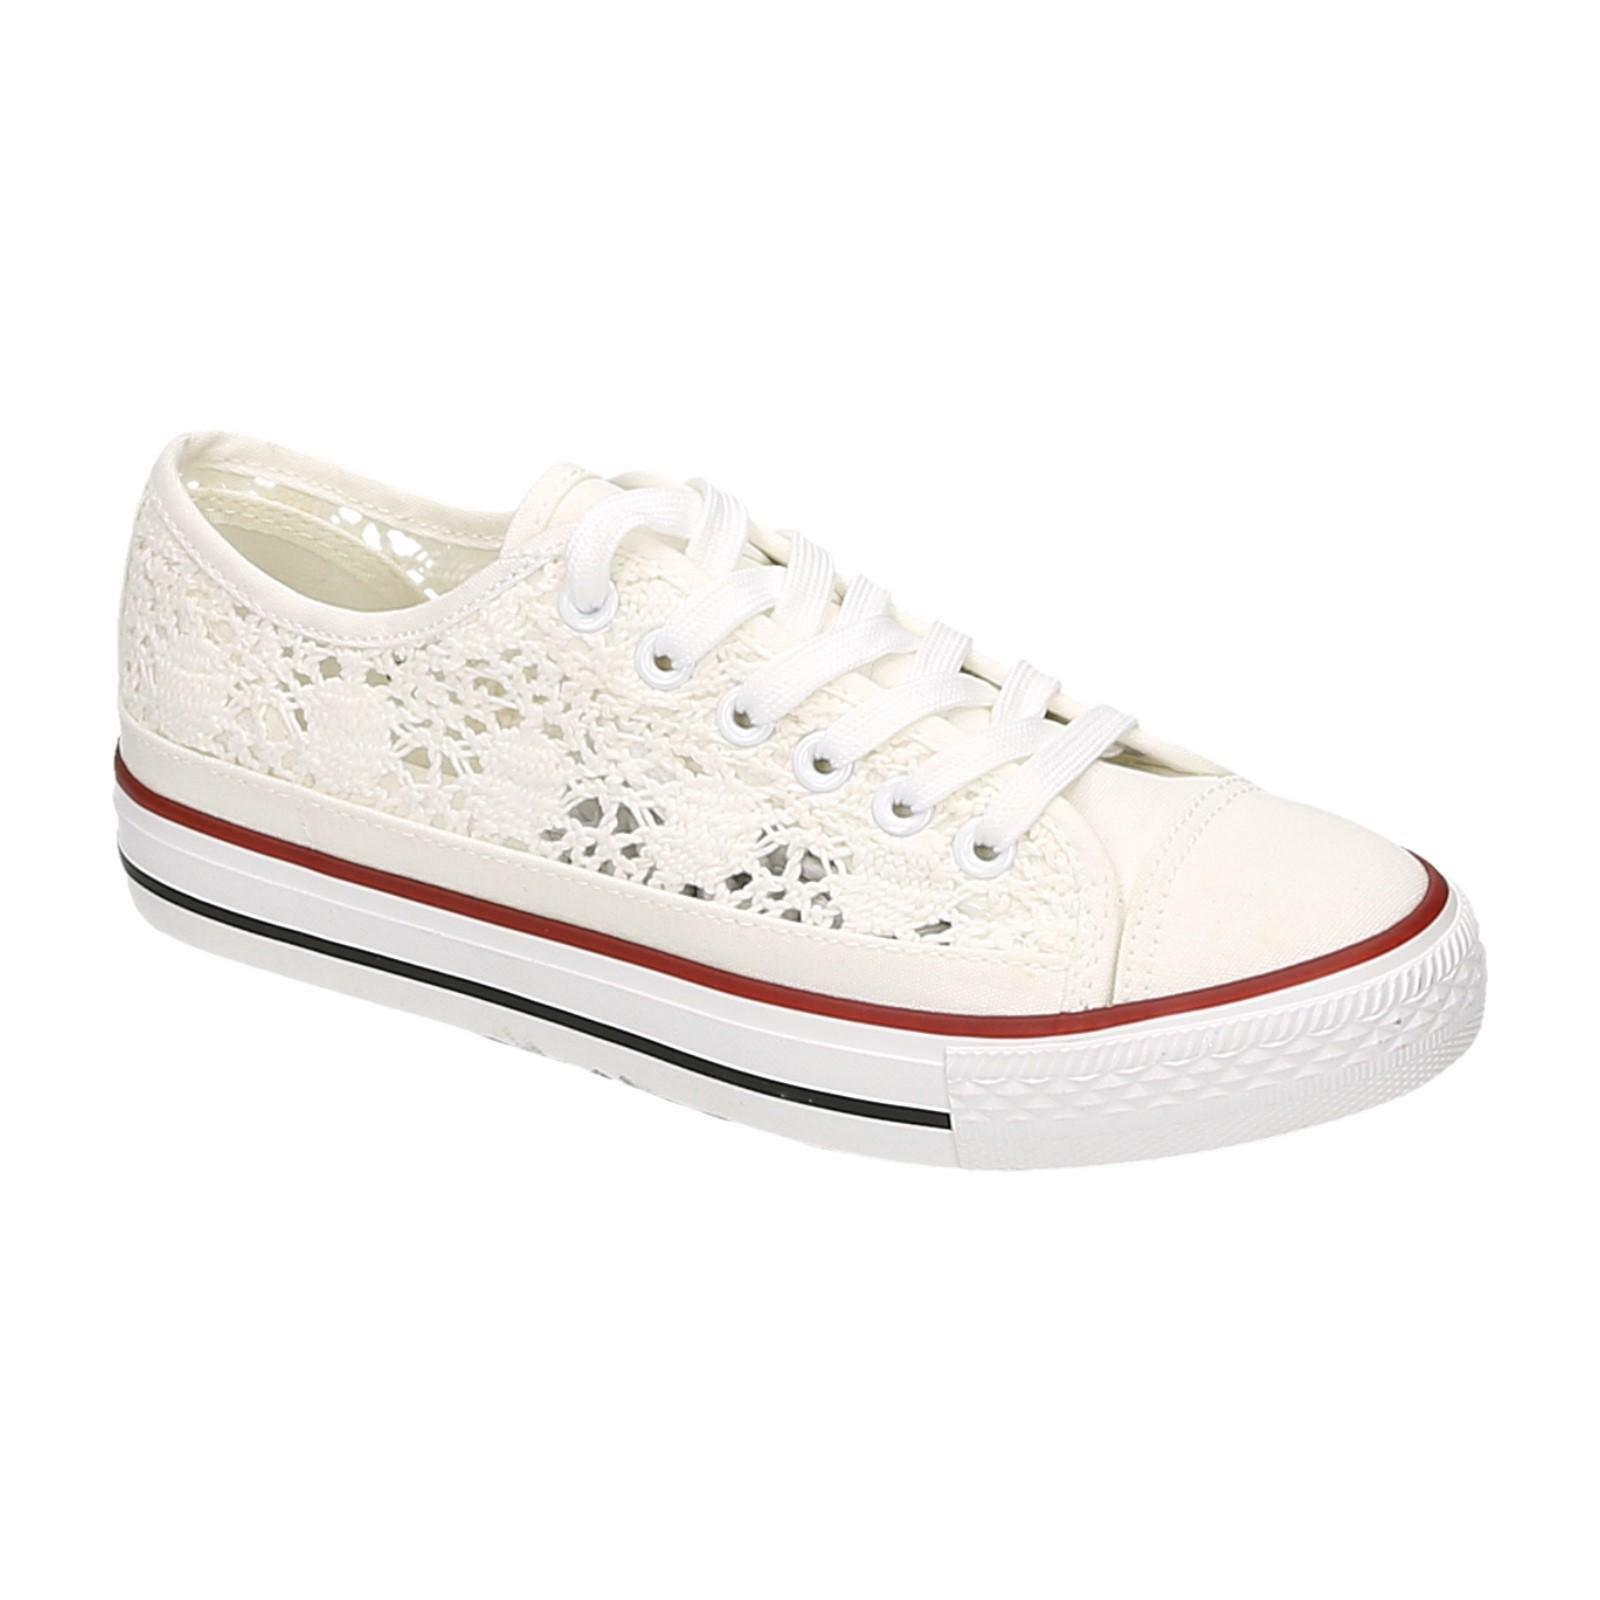 Women's Sneakers Low Top Canvas shoes Lace Trainers Leisure shoes